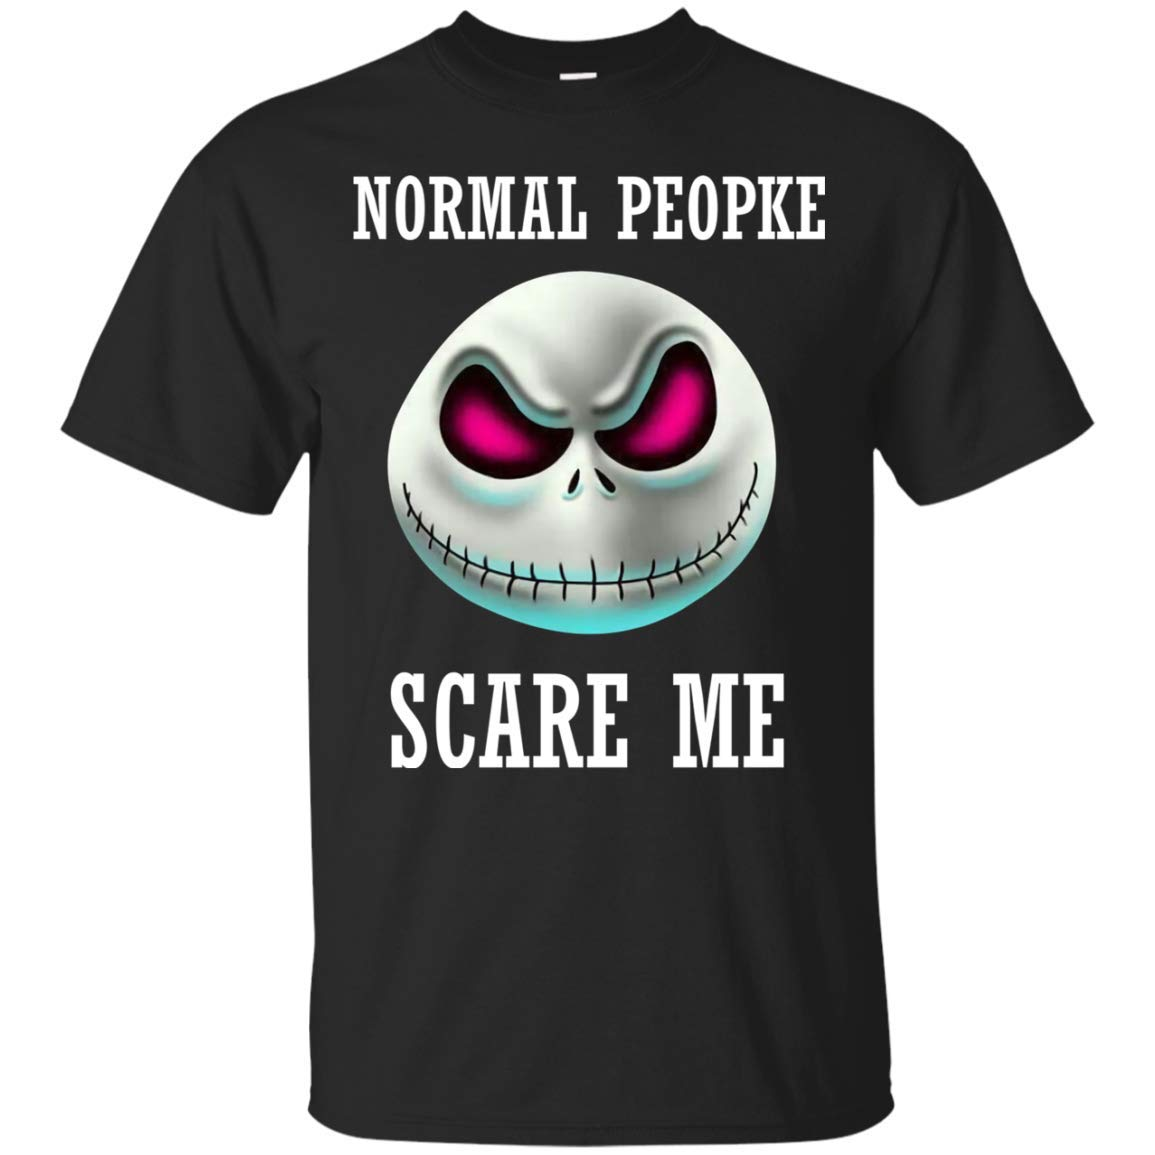 Normal People Scare Me Gift Ultra Cotton T-Shirt